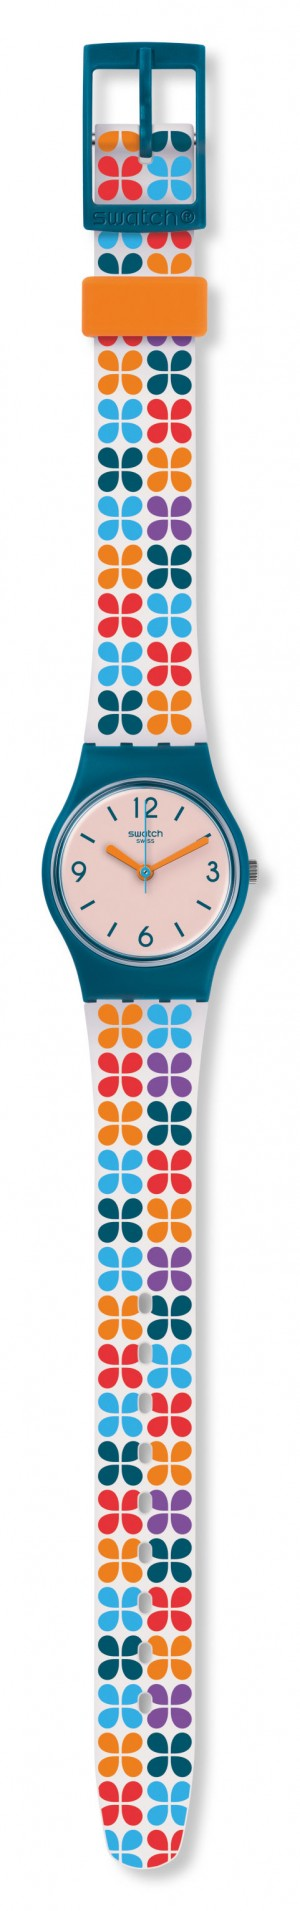 Swatch Paseo De Gracia